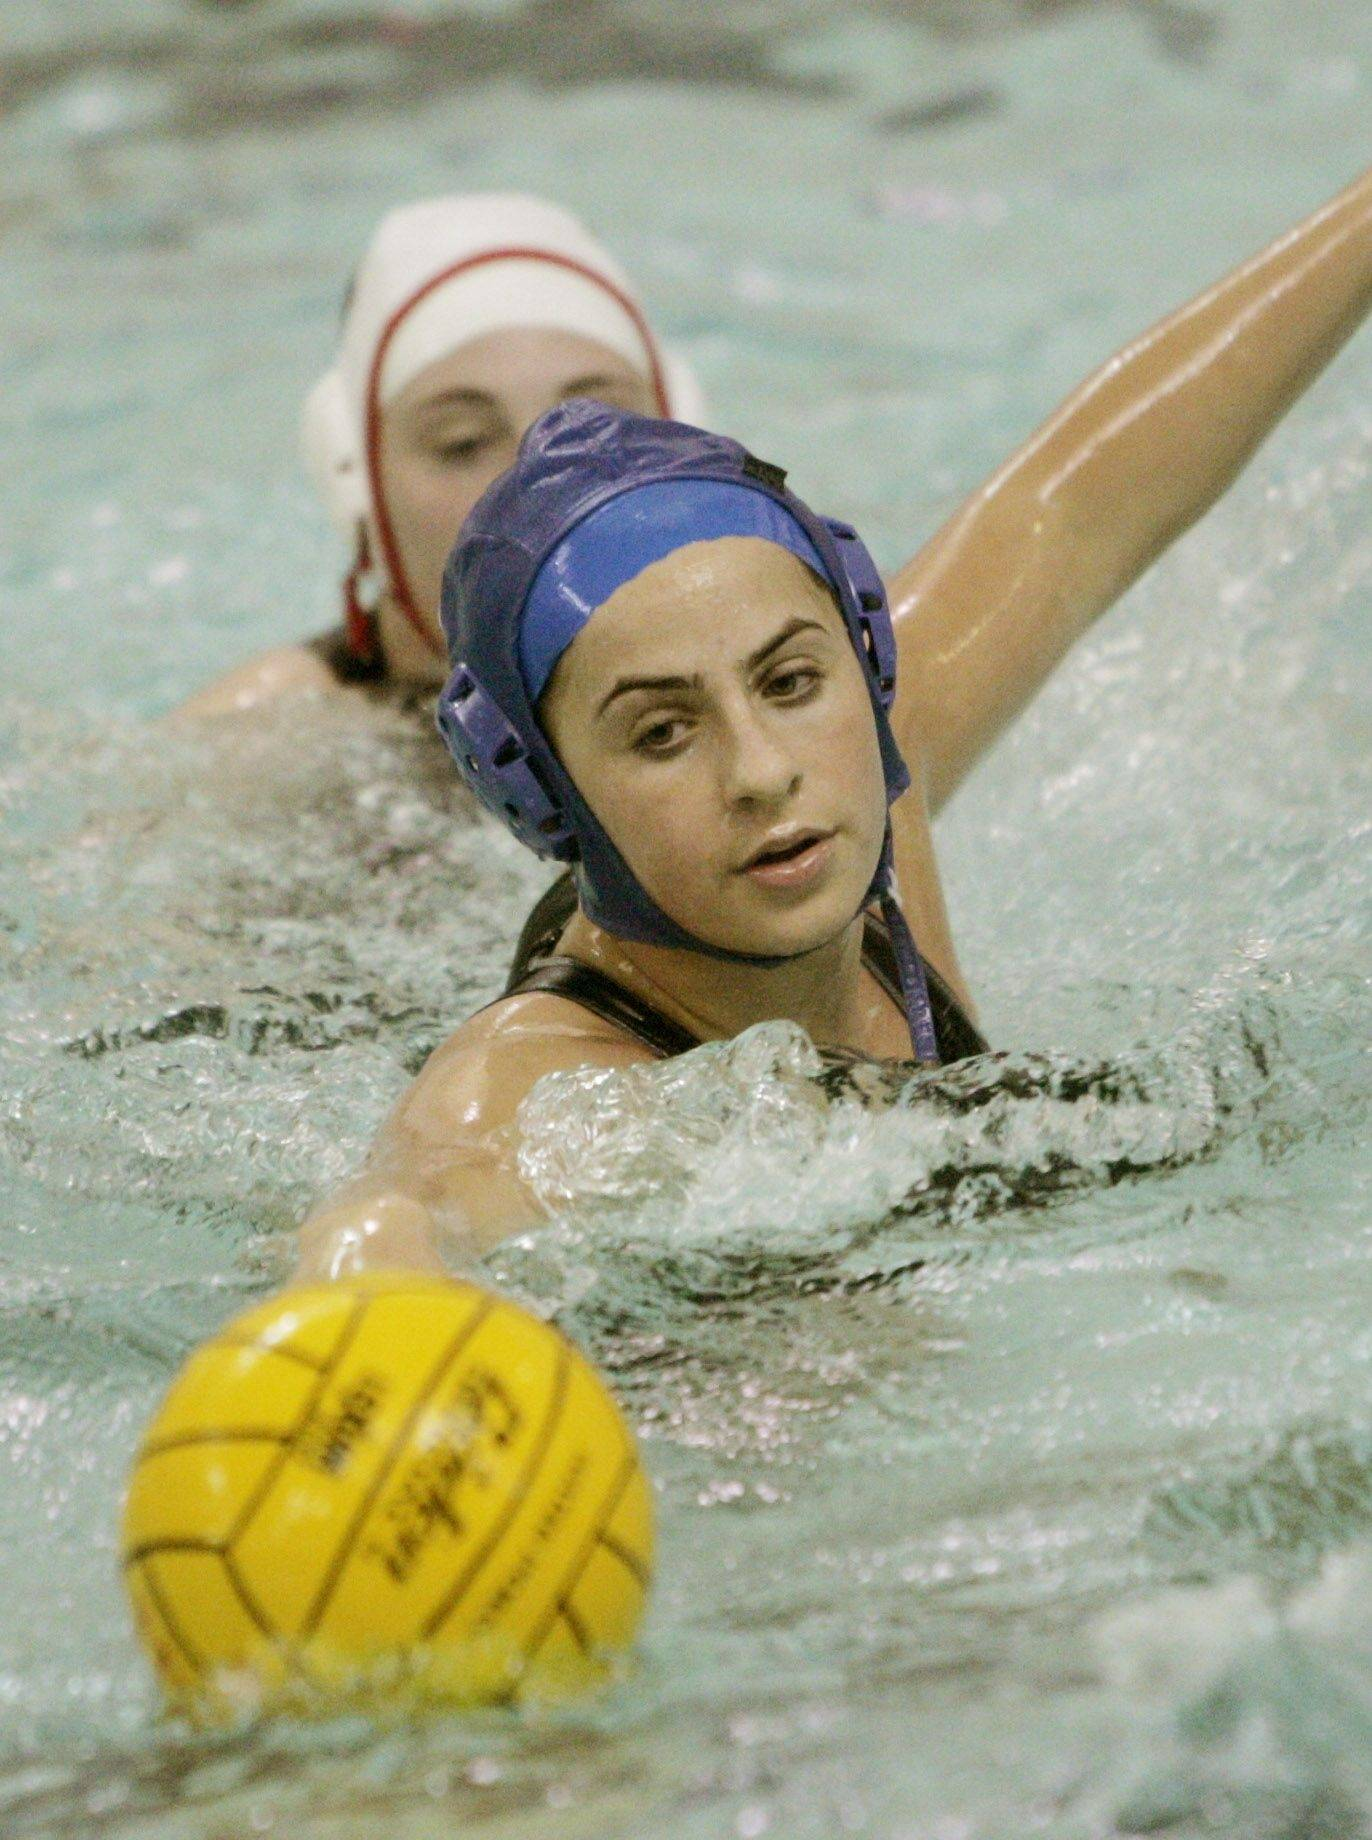 Naperville Central's Laura Vallo chases the ball with Hinsdale Central's Colleen Moran Monday during girls water polo game in Naperville.